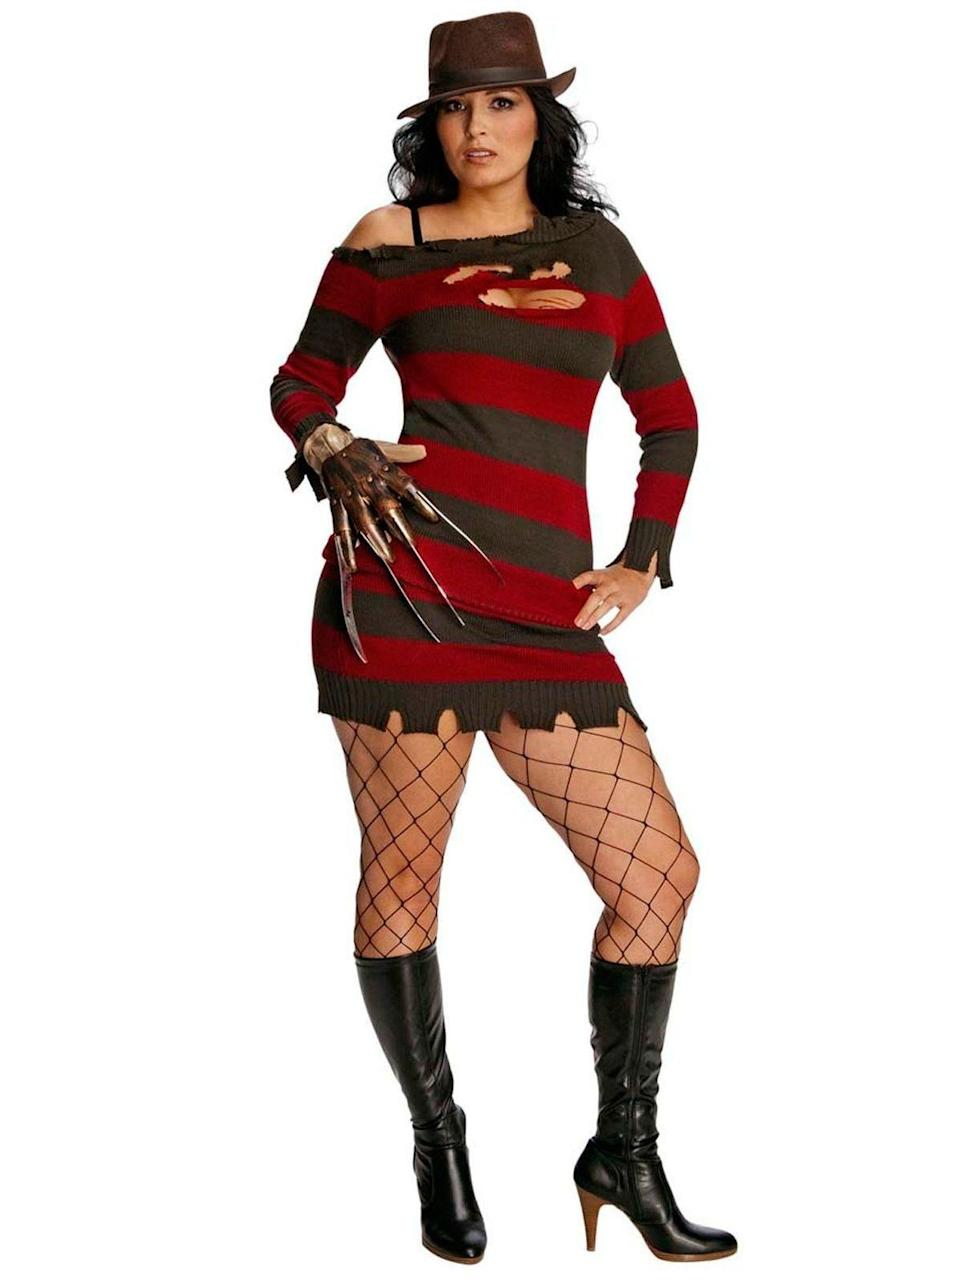 "<p><strong>Costume Supercenter</strong></p><p>costumesupercenter.com</p><p><strong>$50.39</strong></p><p><a href=""https://www.costumesupercenter.com/products/nightmare-on-elm-street-miss-freddy-kruger-plus-costume"" rel=""nofollow noopener"" target=""_blank"" data-ylk=""slk:SHOP NOW"" class=""link rapid-noclick-resp"">SHOP NOW</a></p><p>Truly the stuff of nightmares. (How does one pull on fishnets with a knife glove?) </p>"